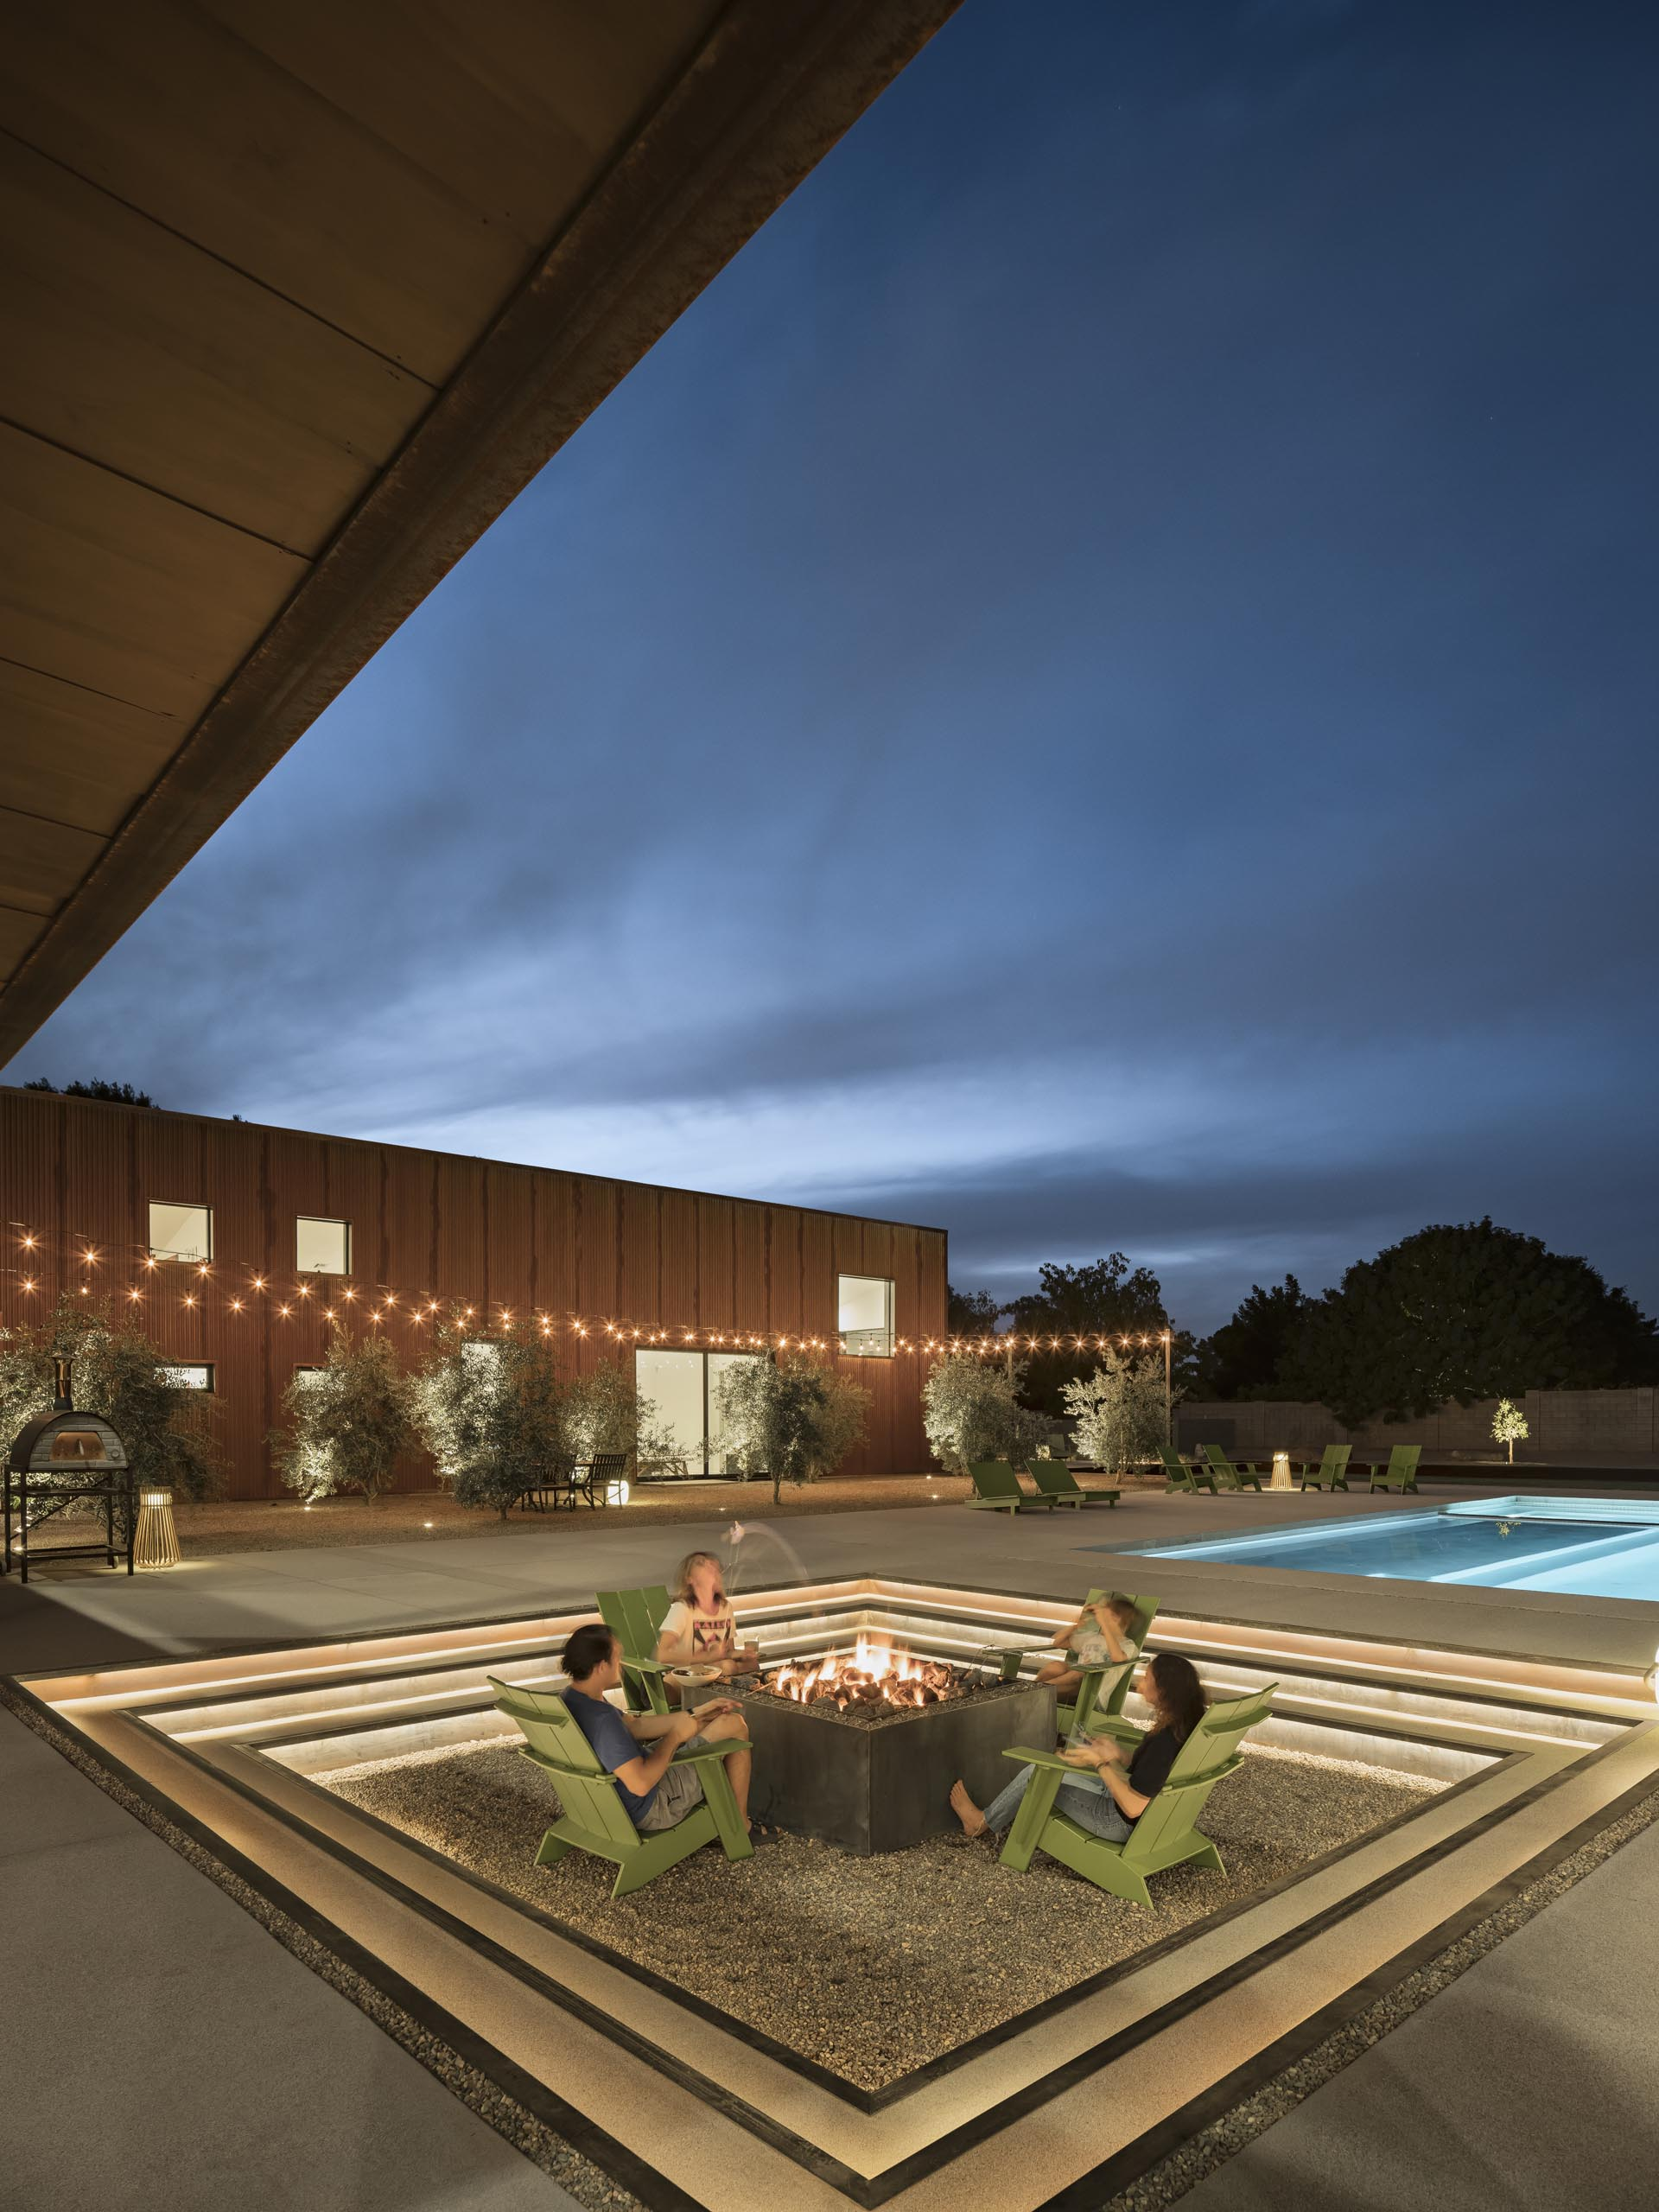 At night, the steps of this modern sunken fire pit are highlighted with hidden lighting, making the perfect place to relax on a cool evening.